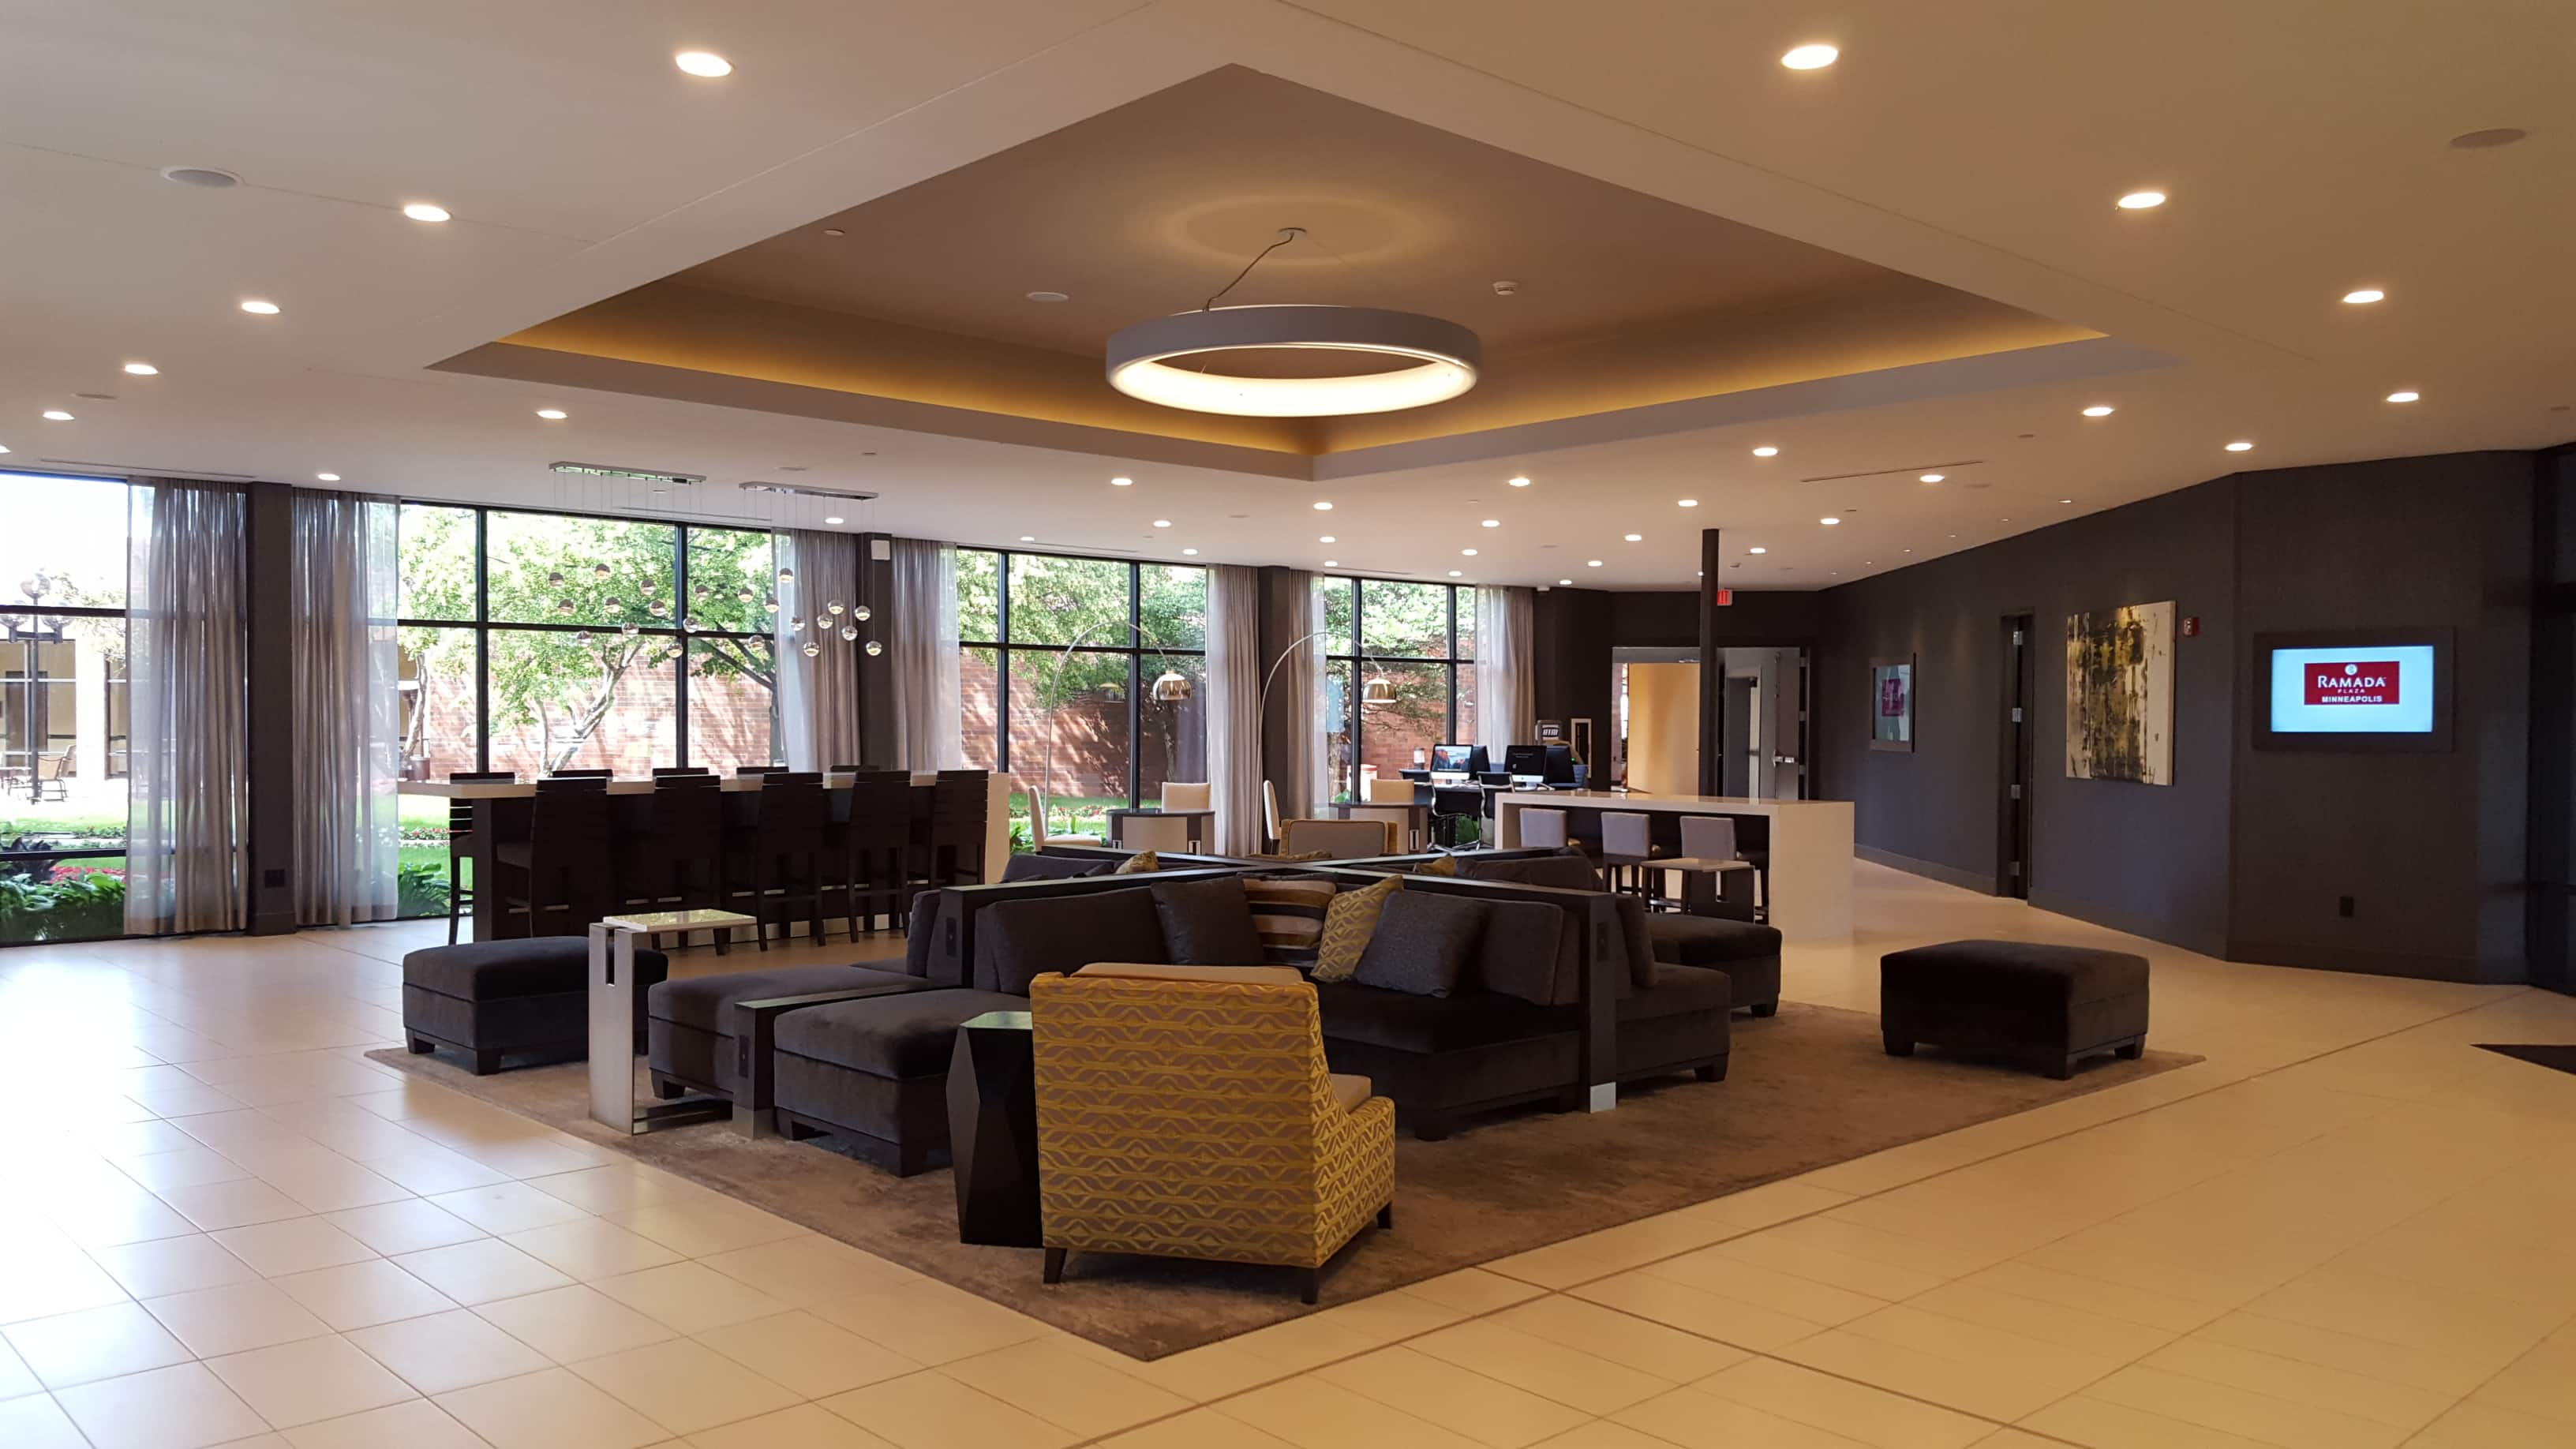 Top Ramada Plaza Minneapolis Hotel Lobby In Minnesota With Hotels Near Marshall Mn